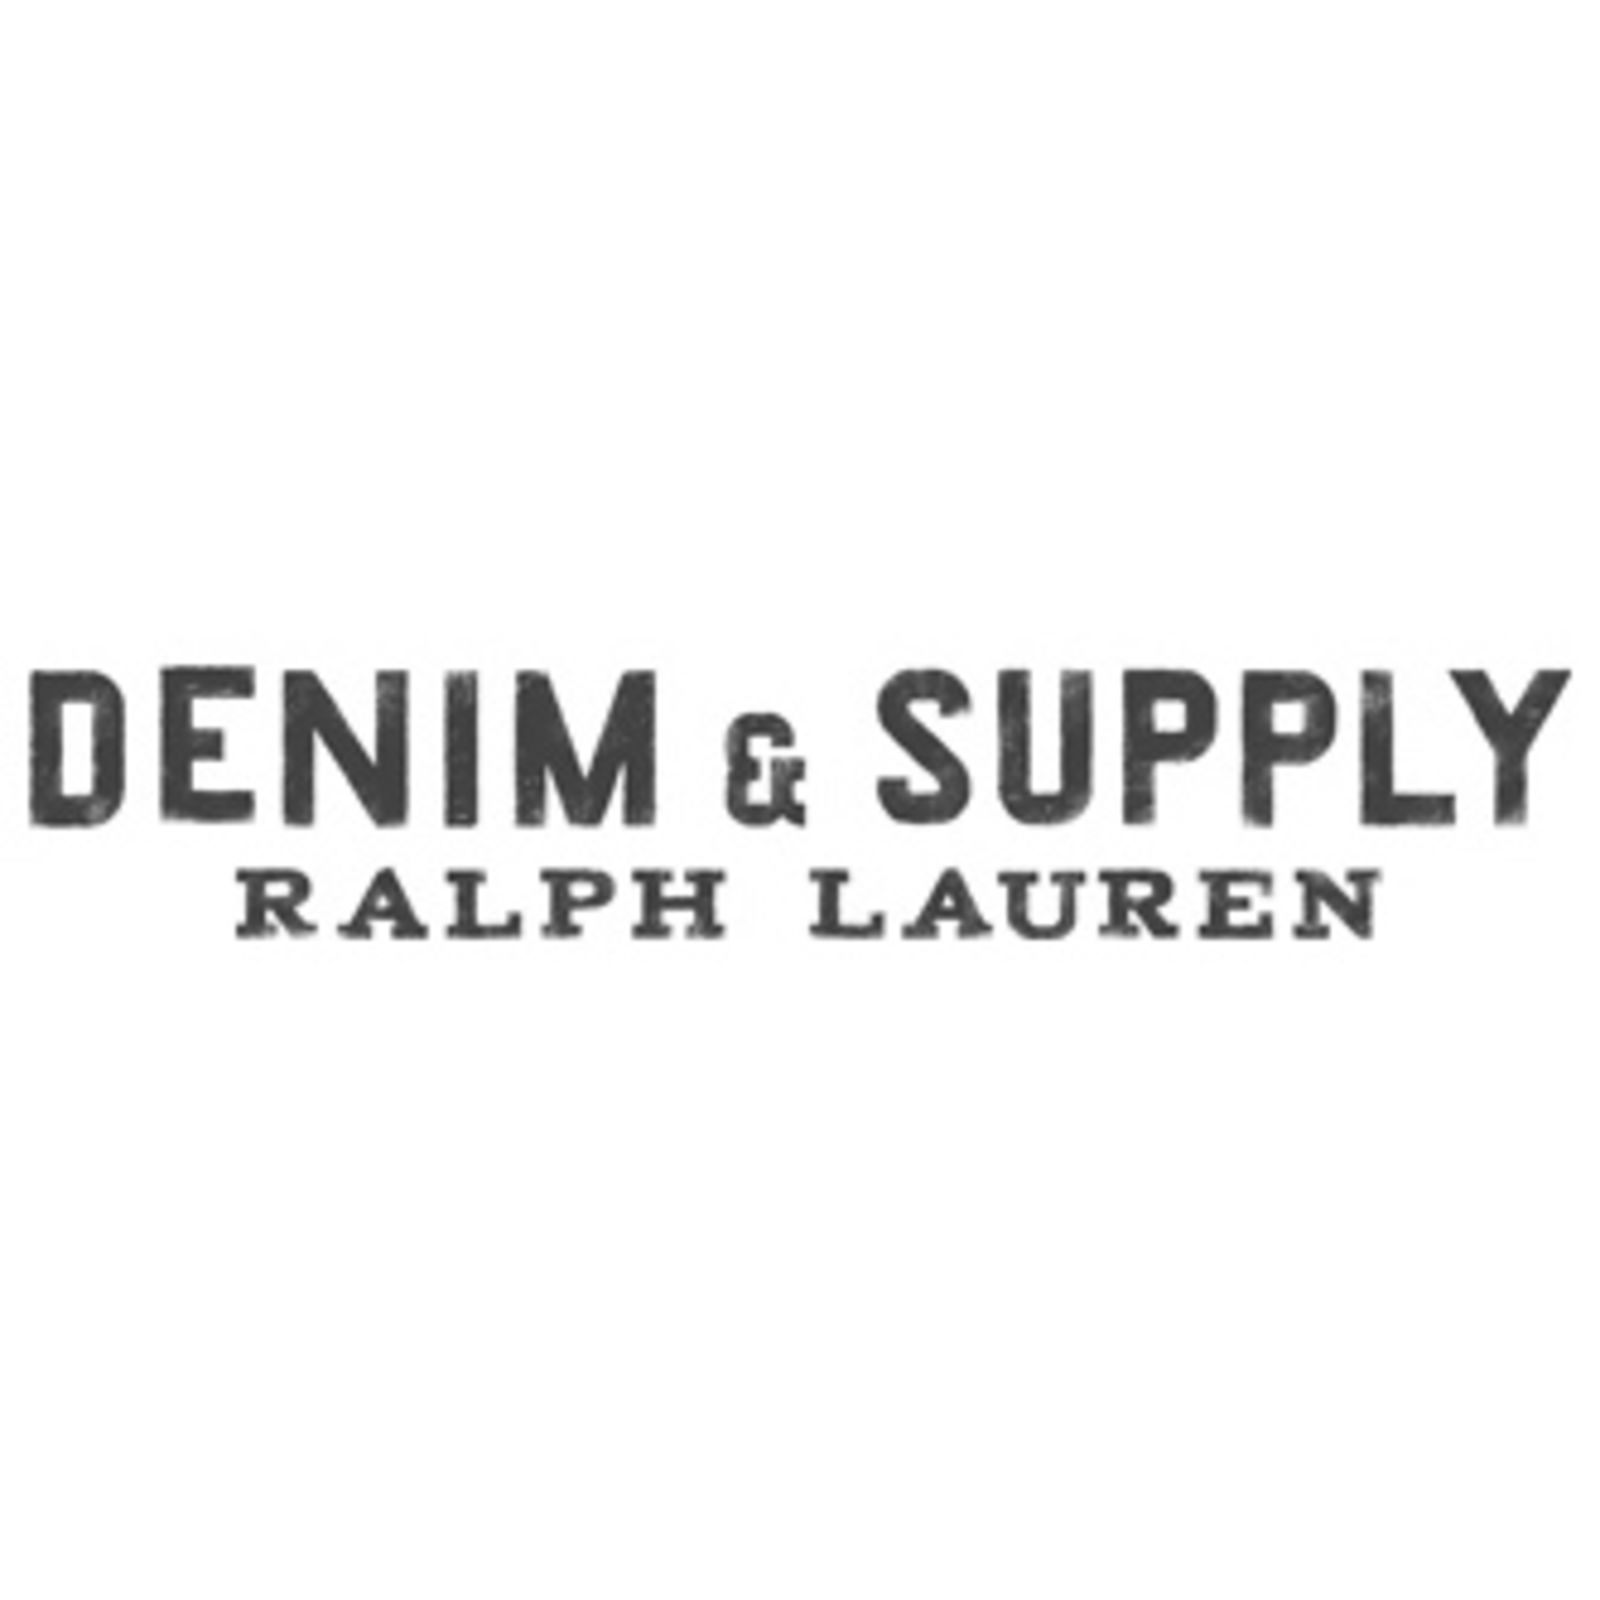 DENIM & SUPPLY (Bild 1)